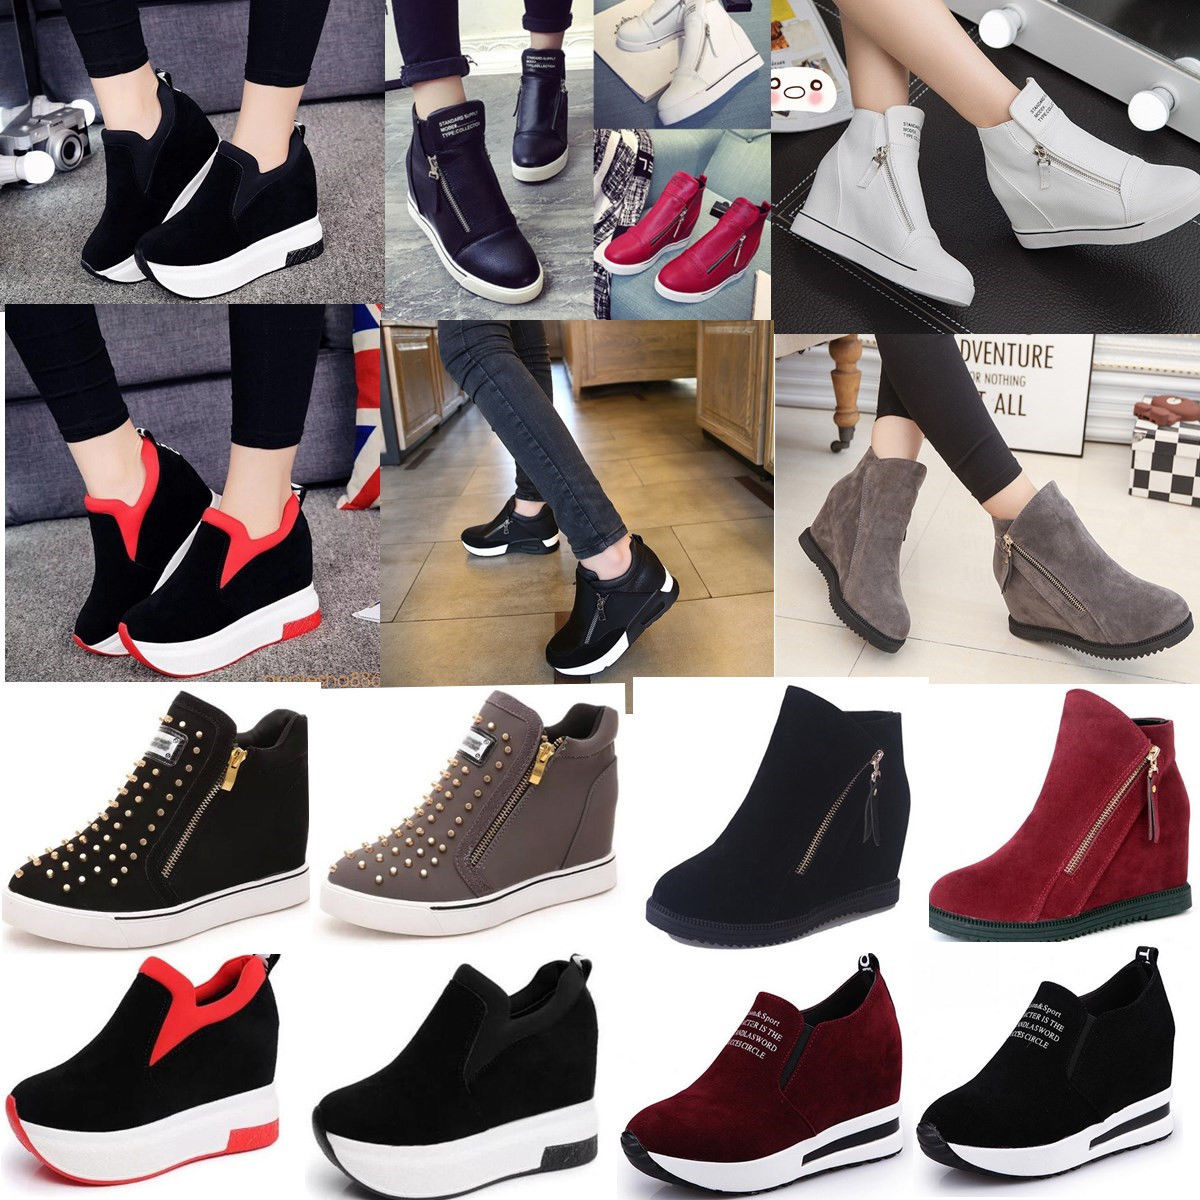 Casual Slip On Sporty Button Fashion Women Hidden Heeled Ankle Sneaker Boots